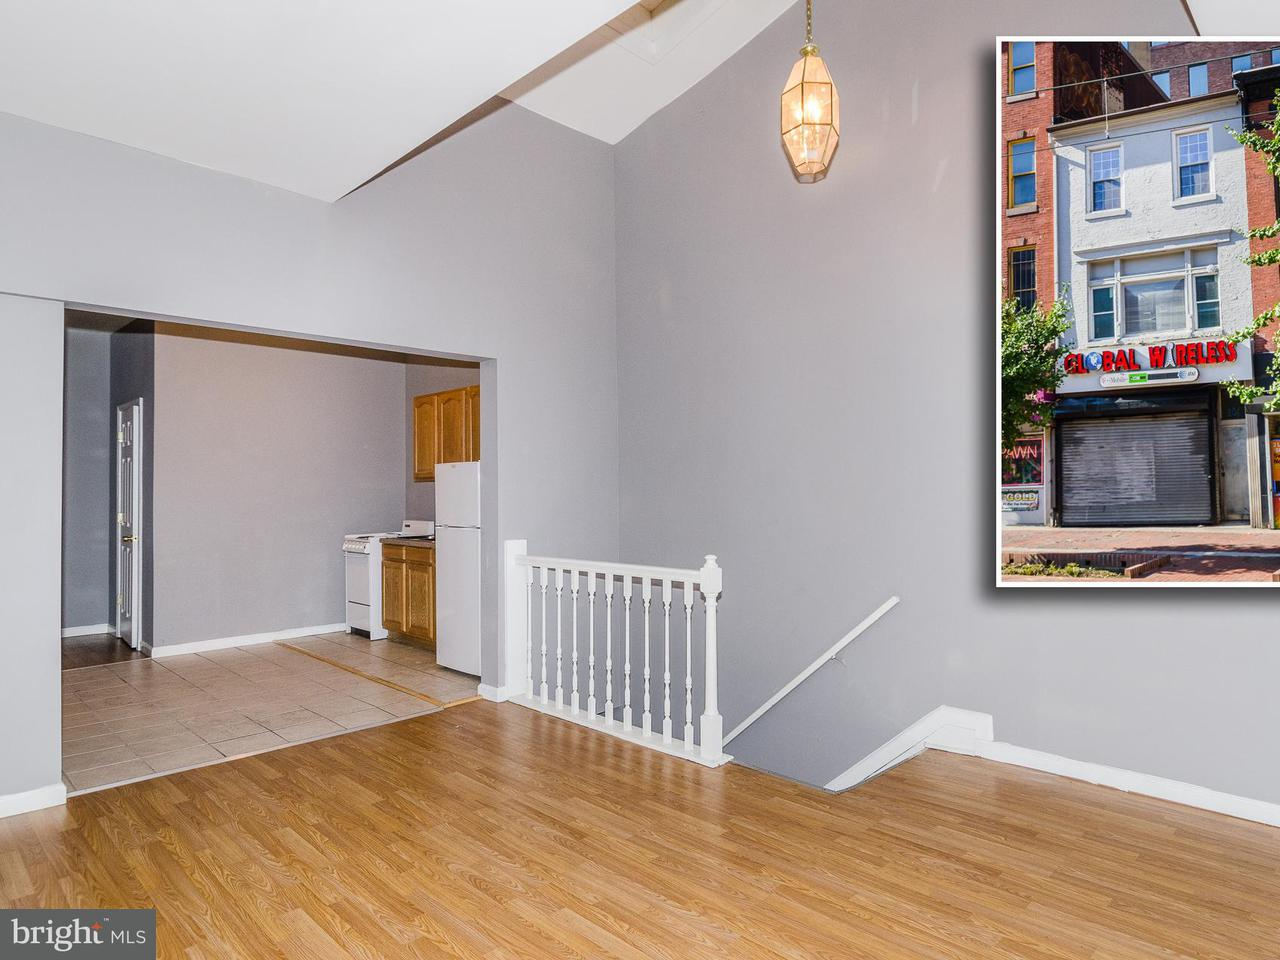 Other Residential for Sale at 106 Howard St N Baltimore, Maryland 21201 United States